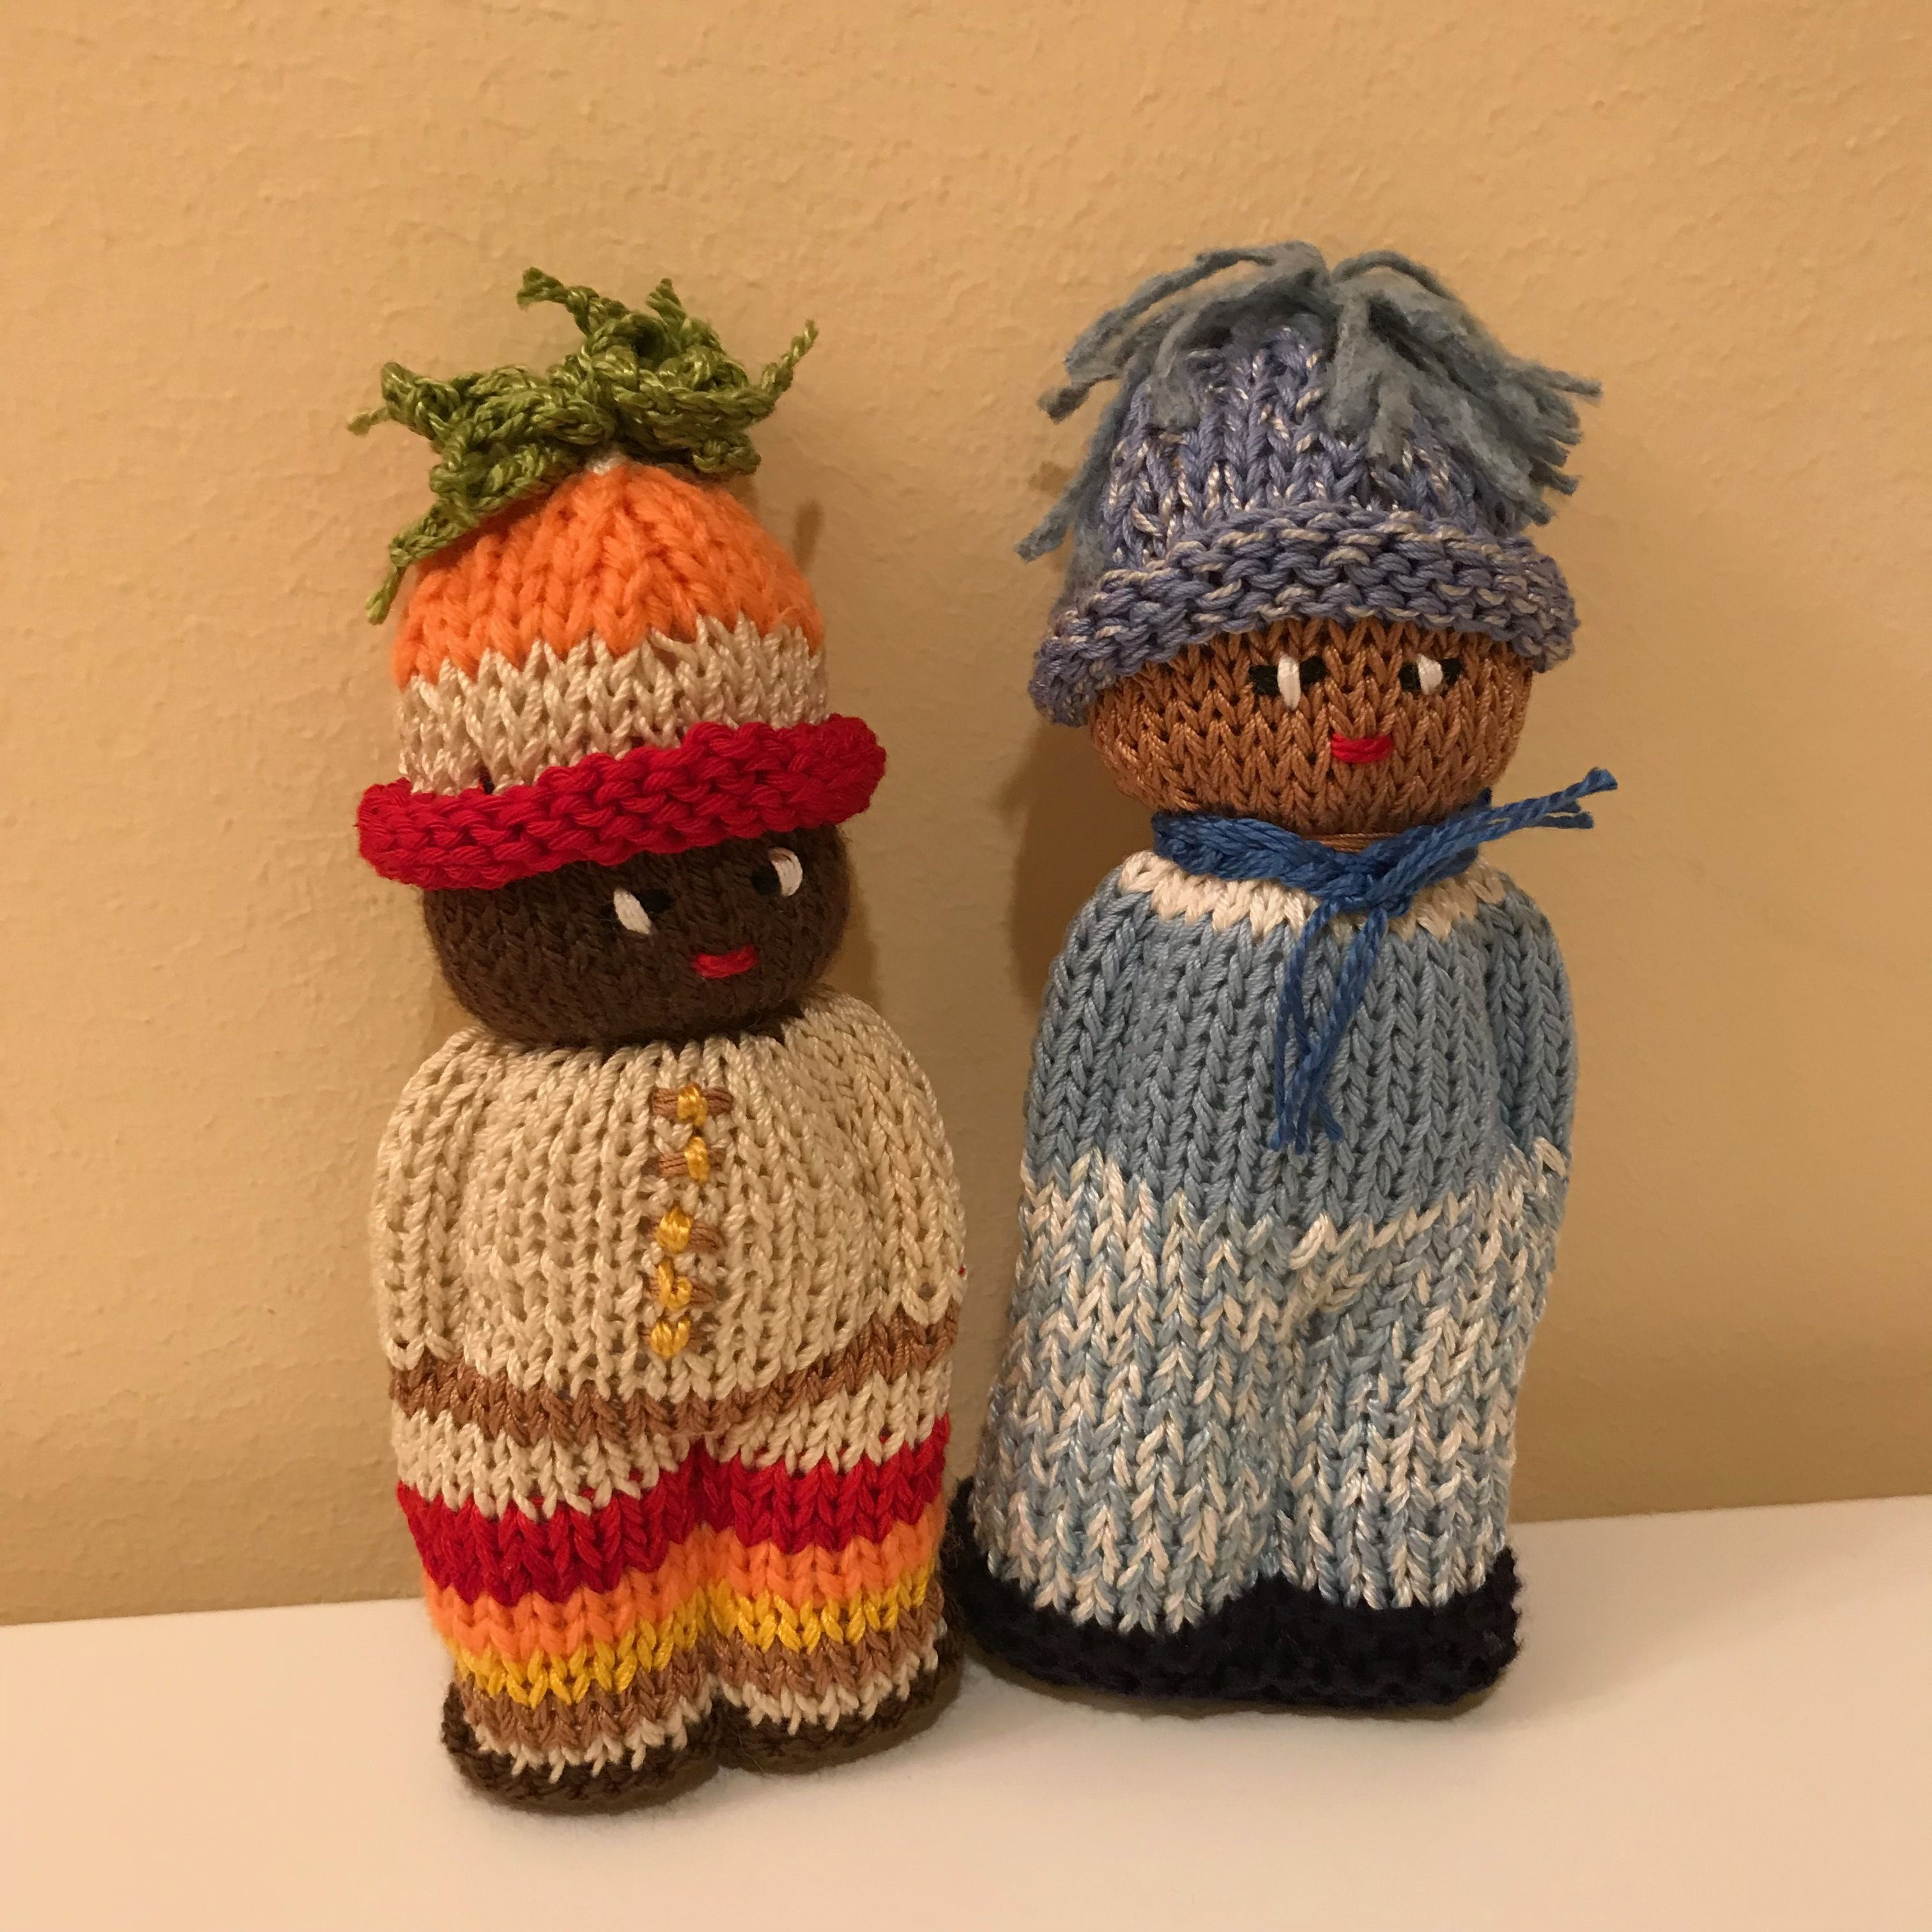 Comfort Doll Comfort Dolls Pinterest Knitted Dolls Dolls And